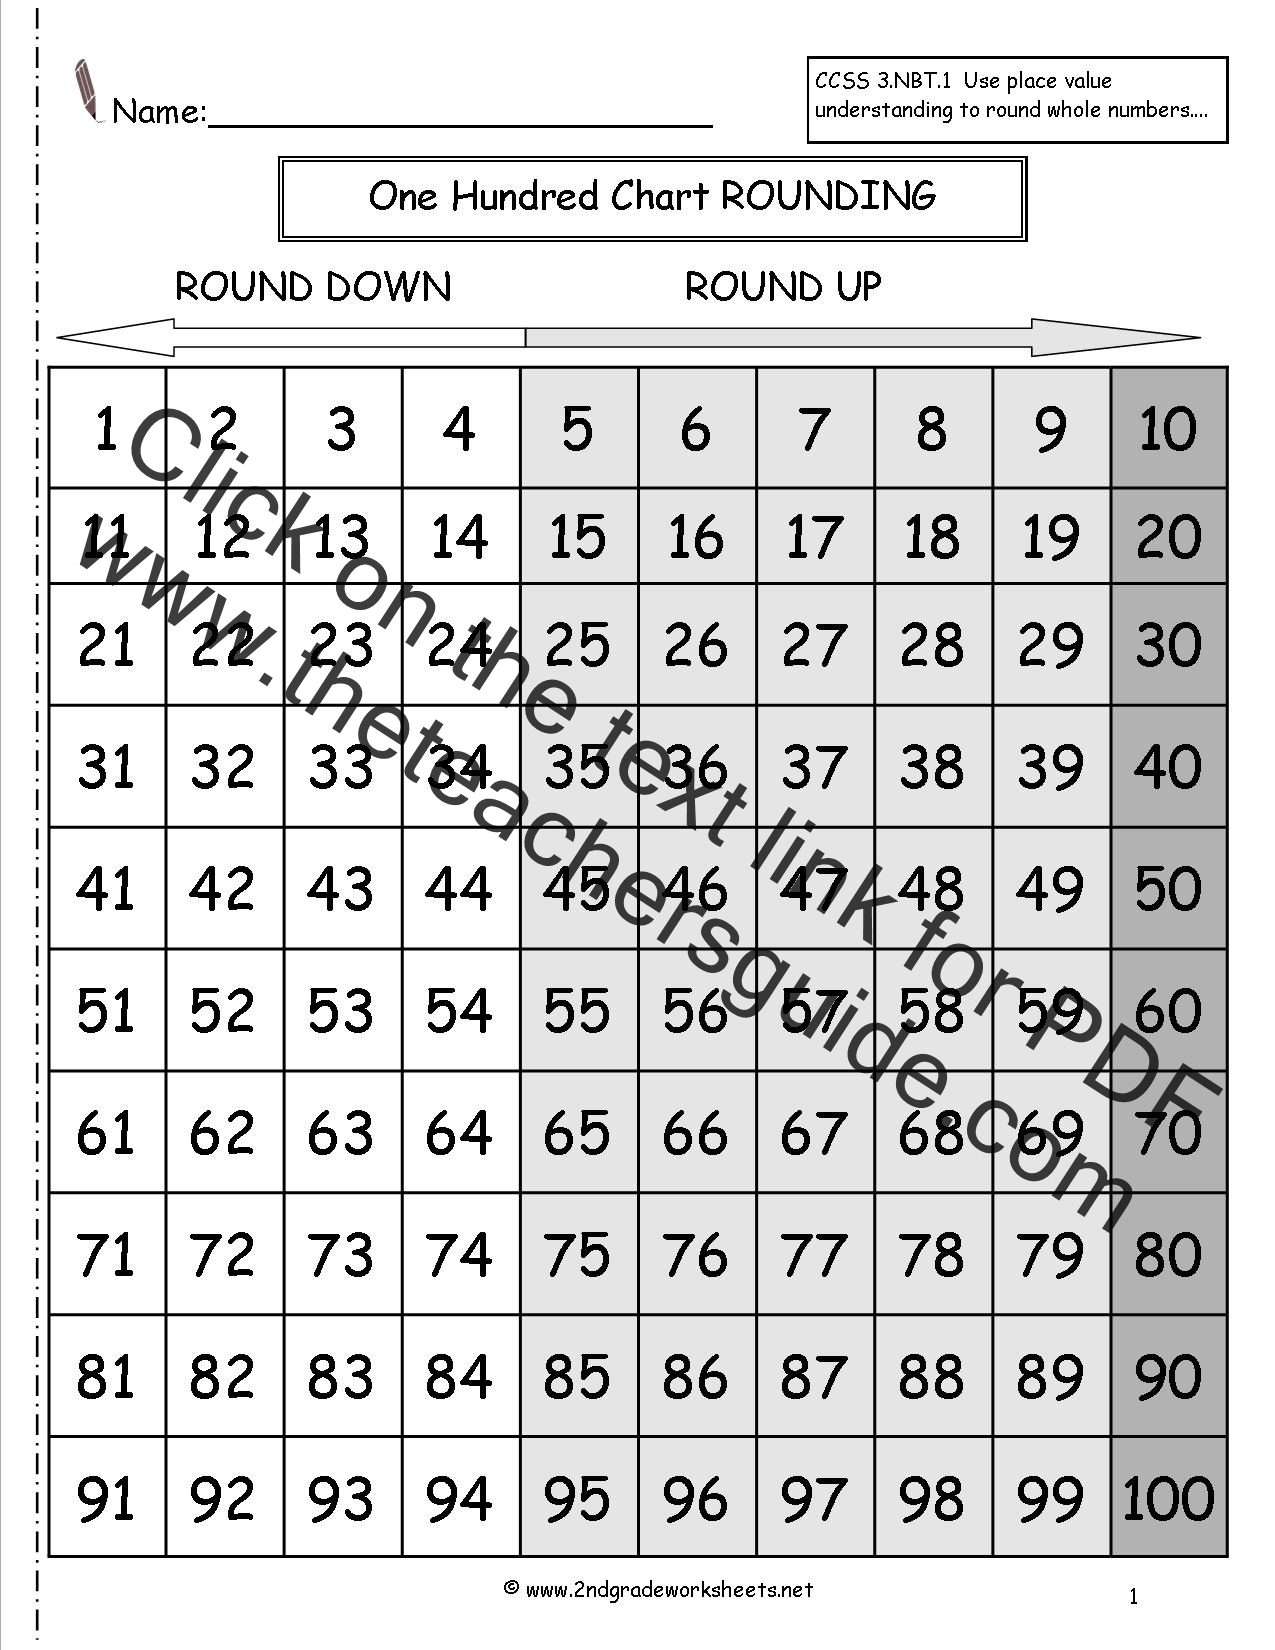 Rounding whole numbers worksheets one hundred rounding chart worksheet nvjuhfo Gallery